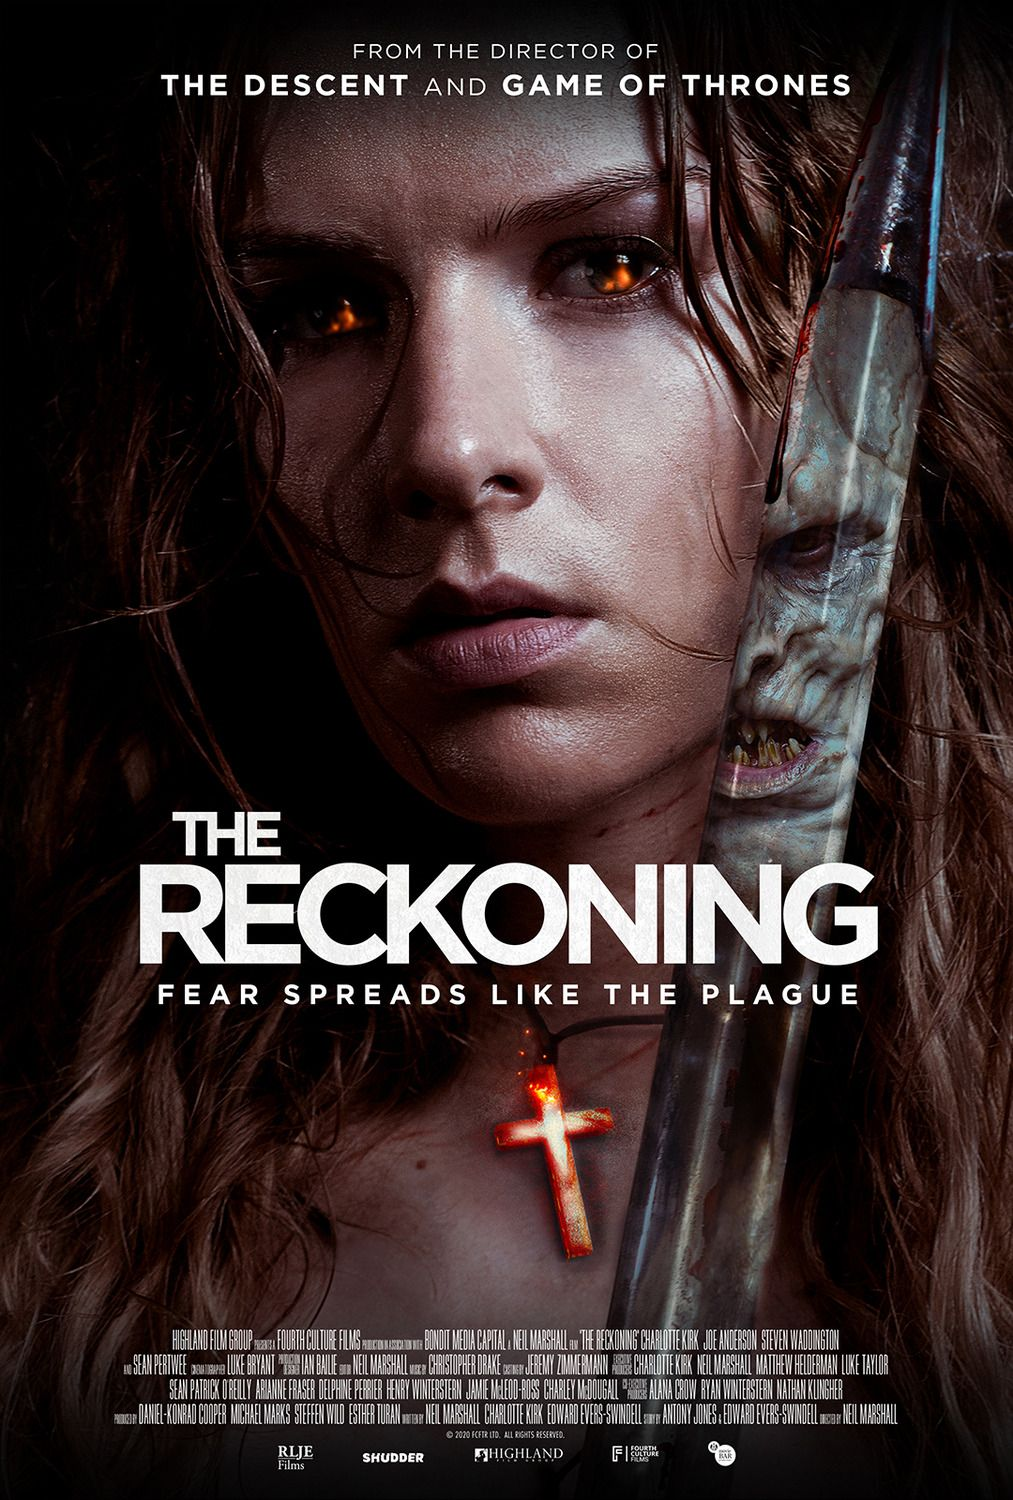 The Reckoning Movie 2021 The Witch Film Sean Pertwee Download Movies